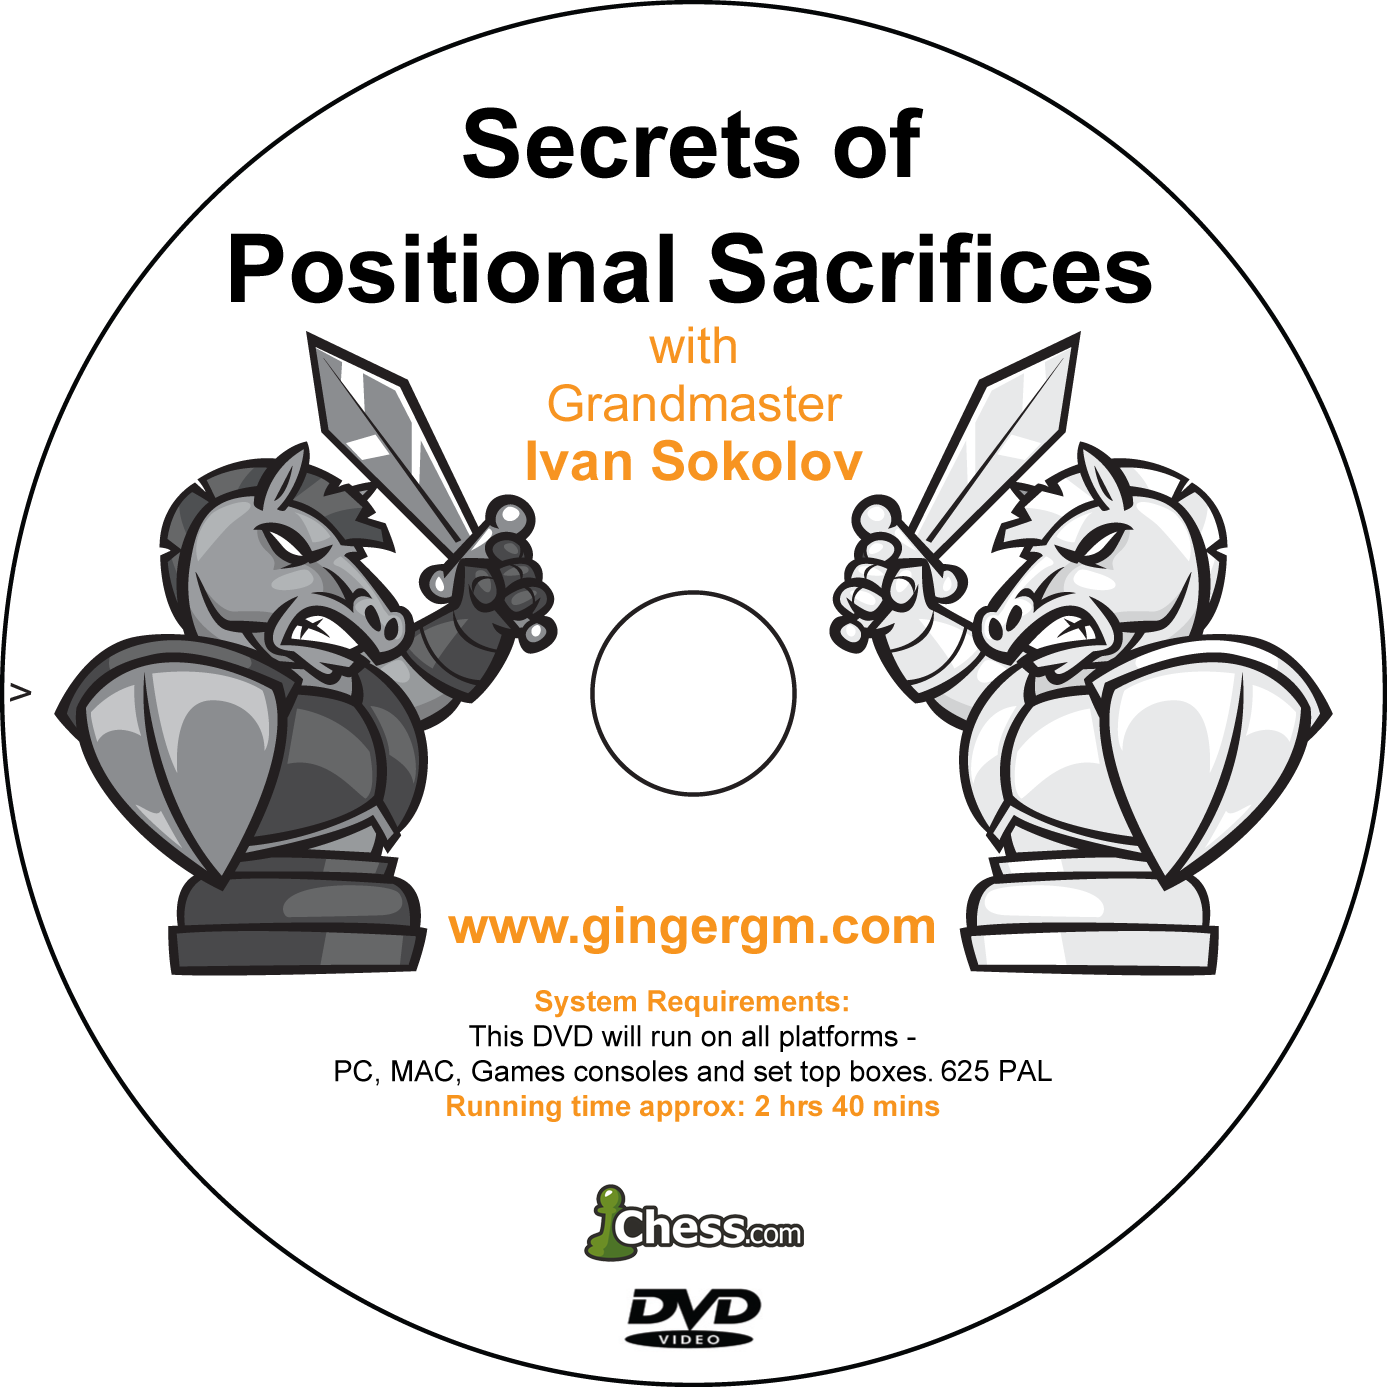 Secrets of Positional Sacrifices